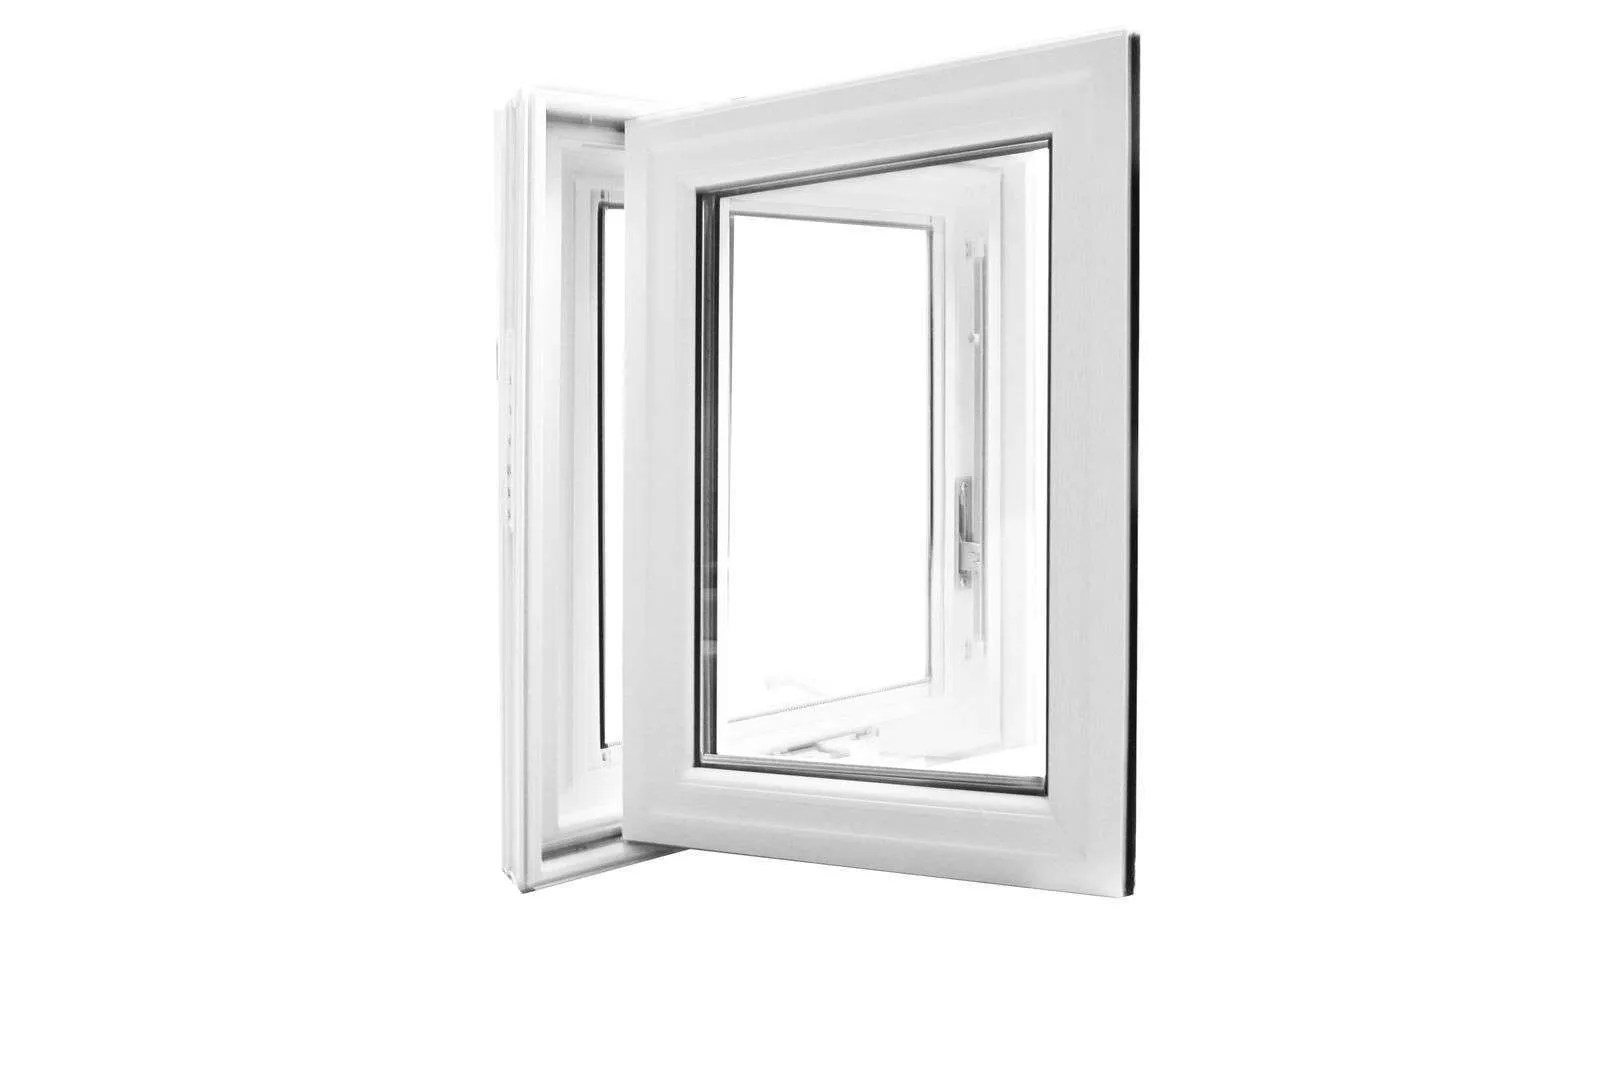 Farley Window Vinyl Casement Windows Farley Windows Doors